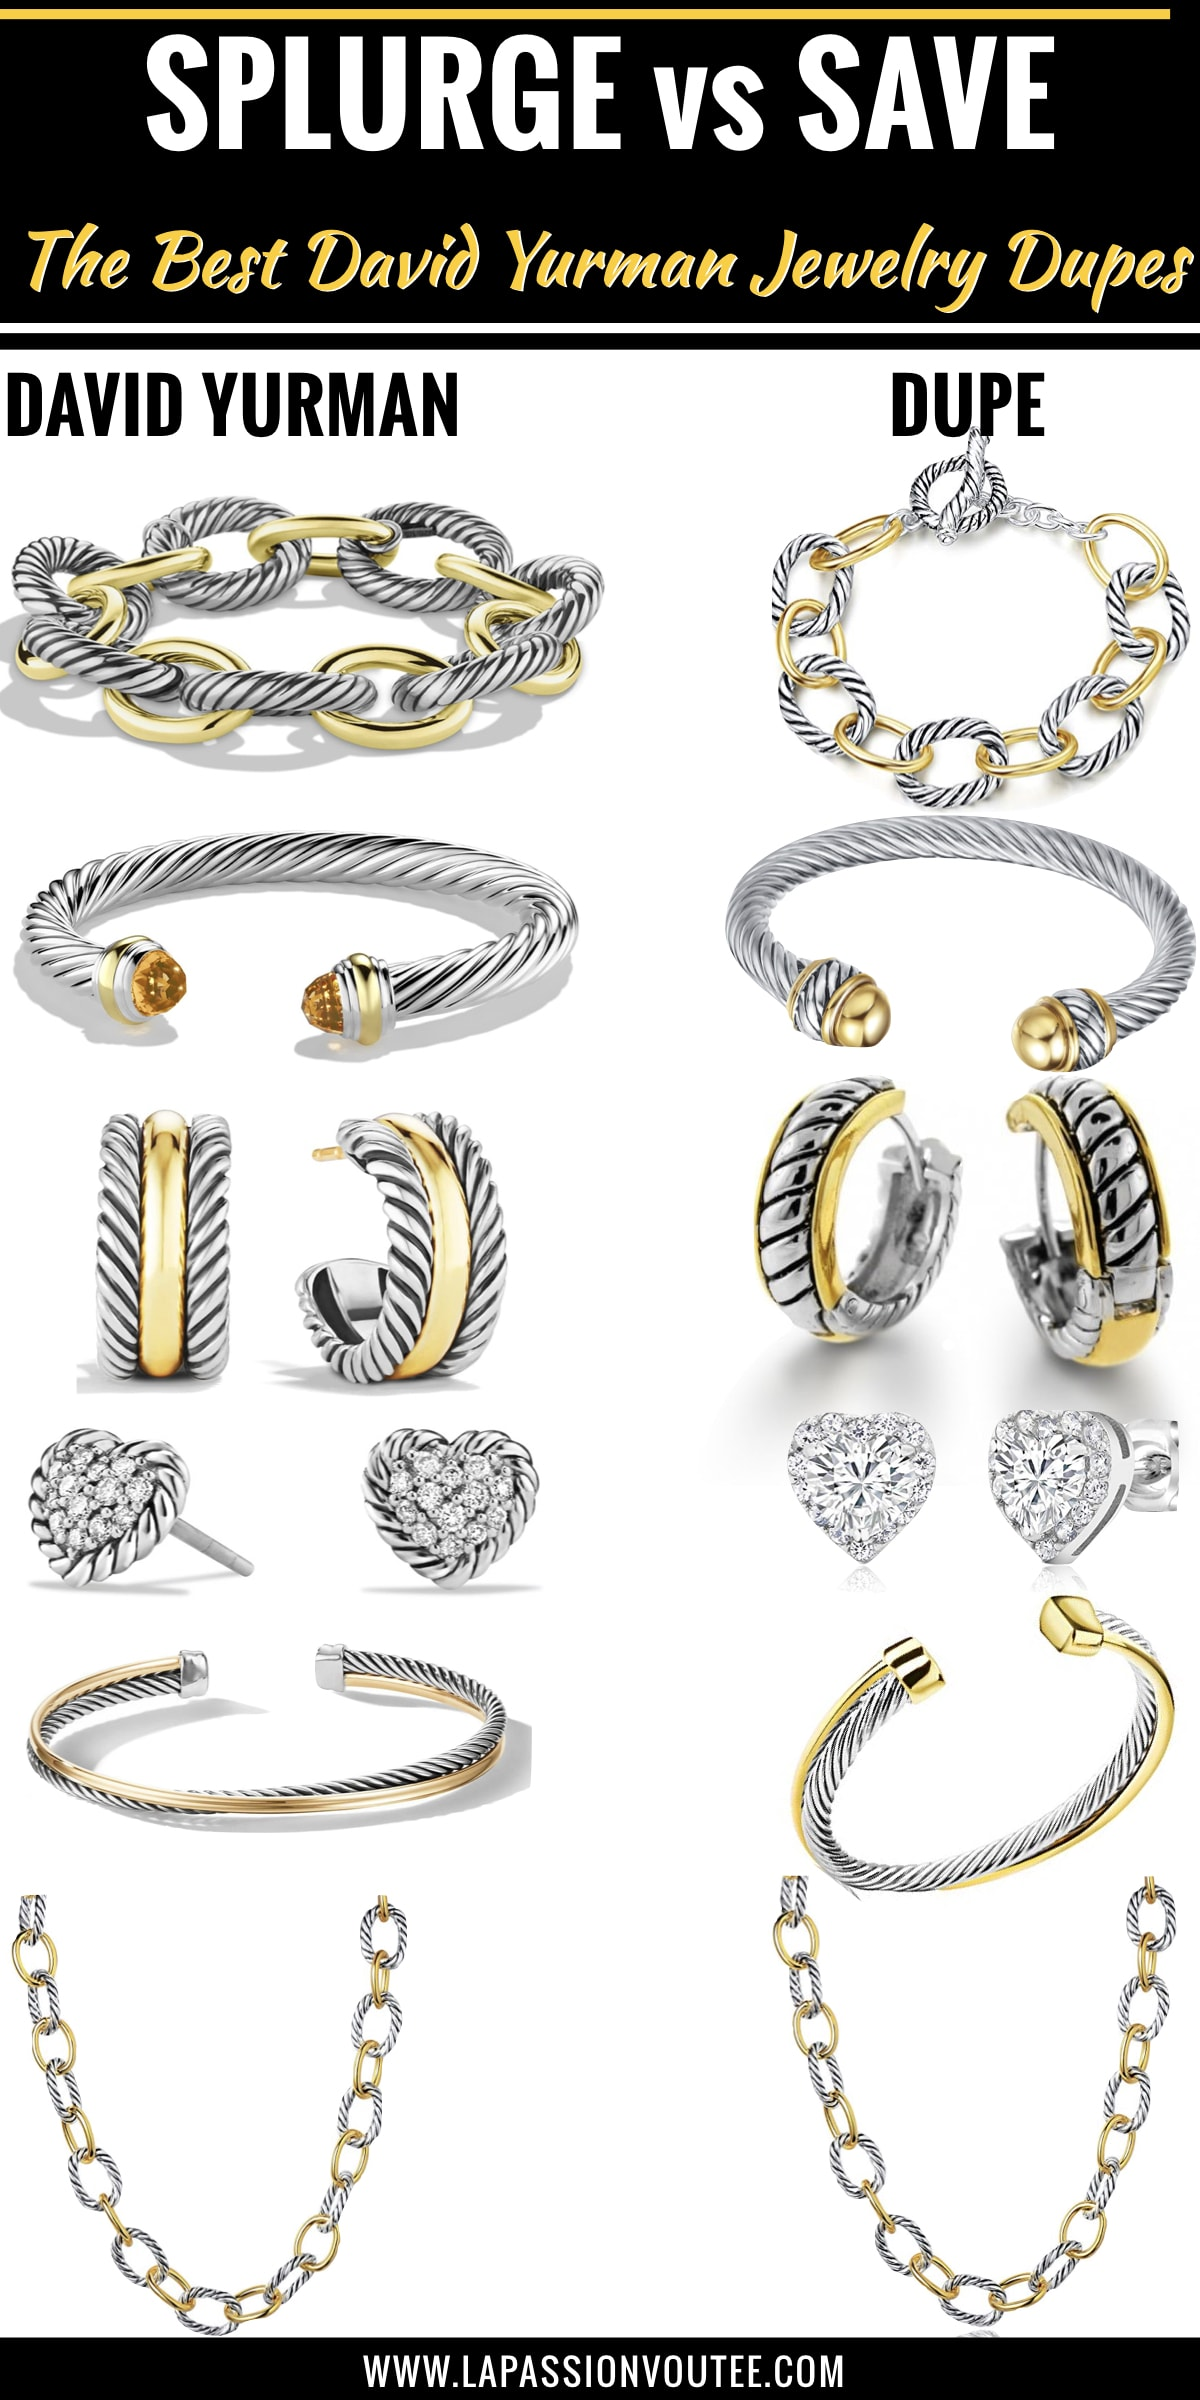 Your ultimate guide to discovering the best designer jewelry dupes like David Yurman look alike jewelry and more designer inspired cable bracelets for a fraction of the price. Keep reading to get the scoop on these luxury inspired pieces today.